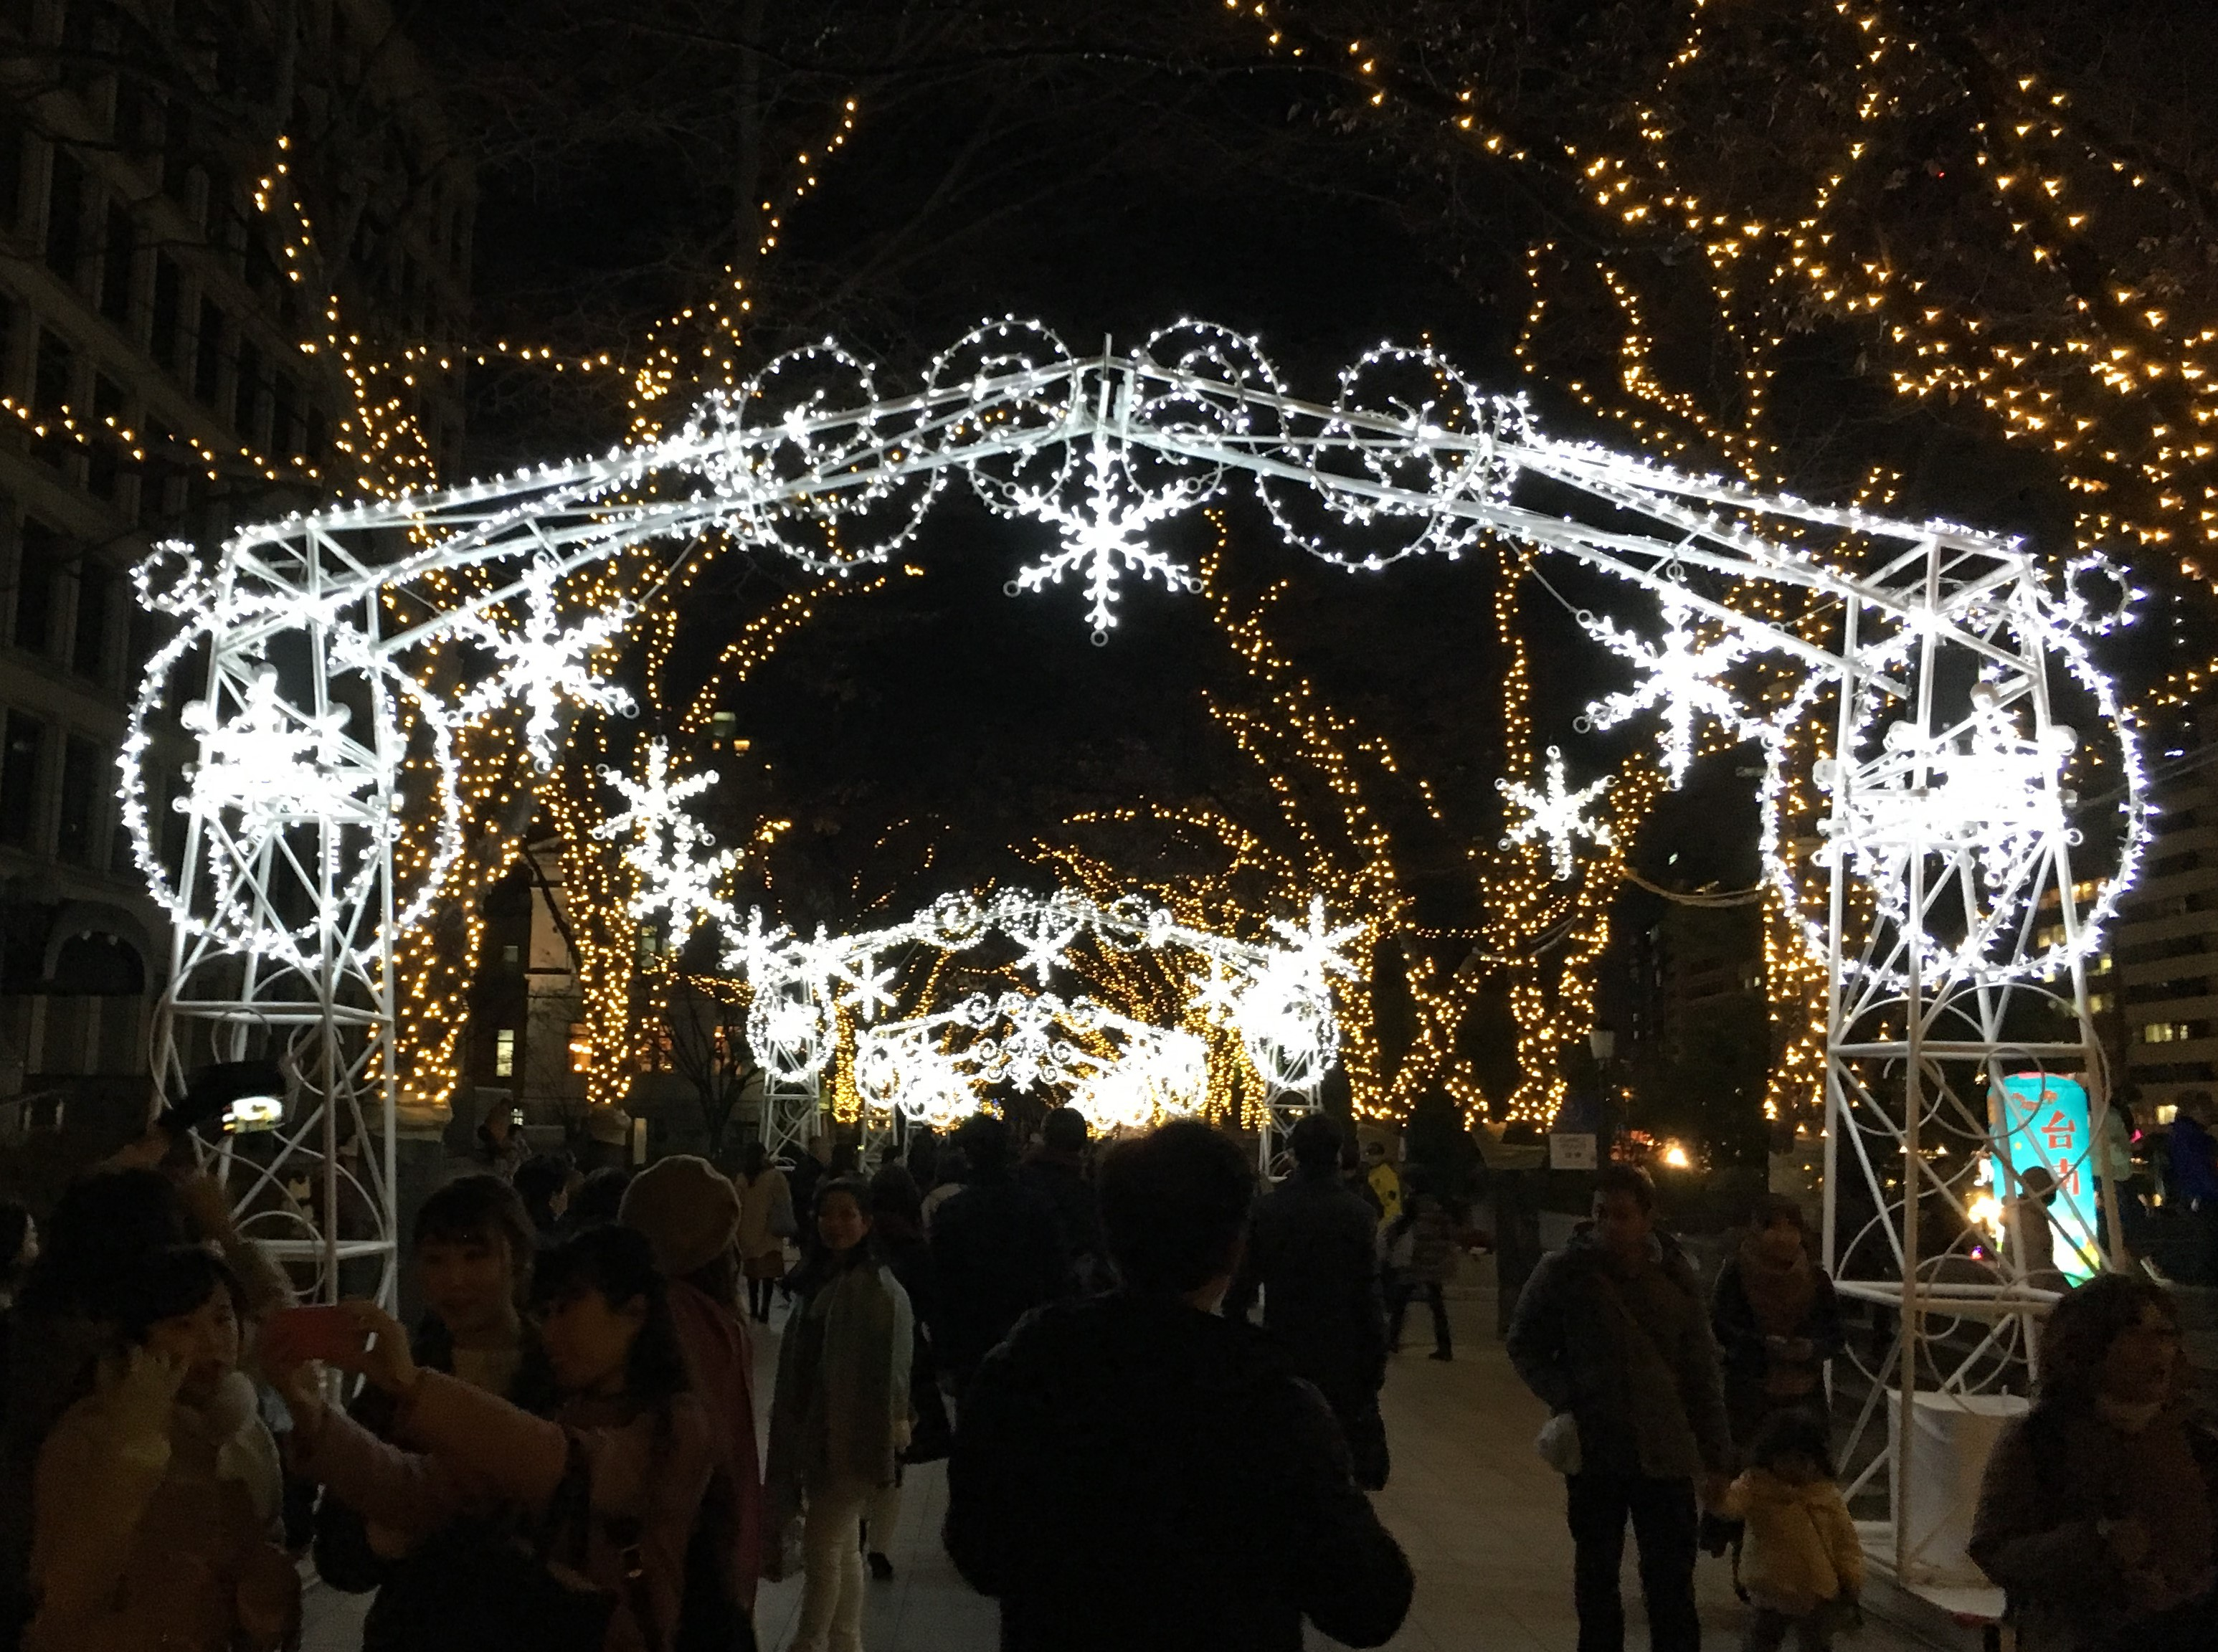 tunnel of winter themed lights